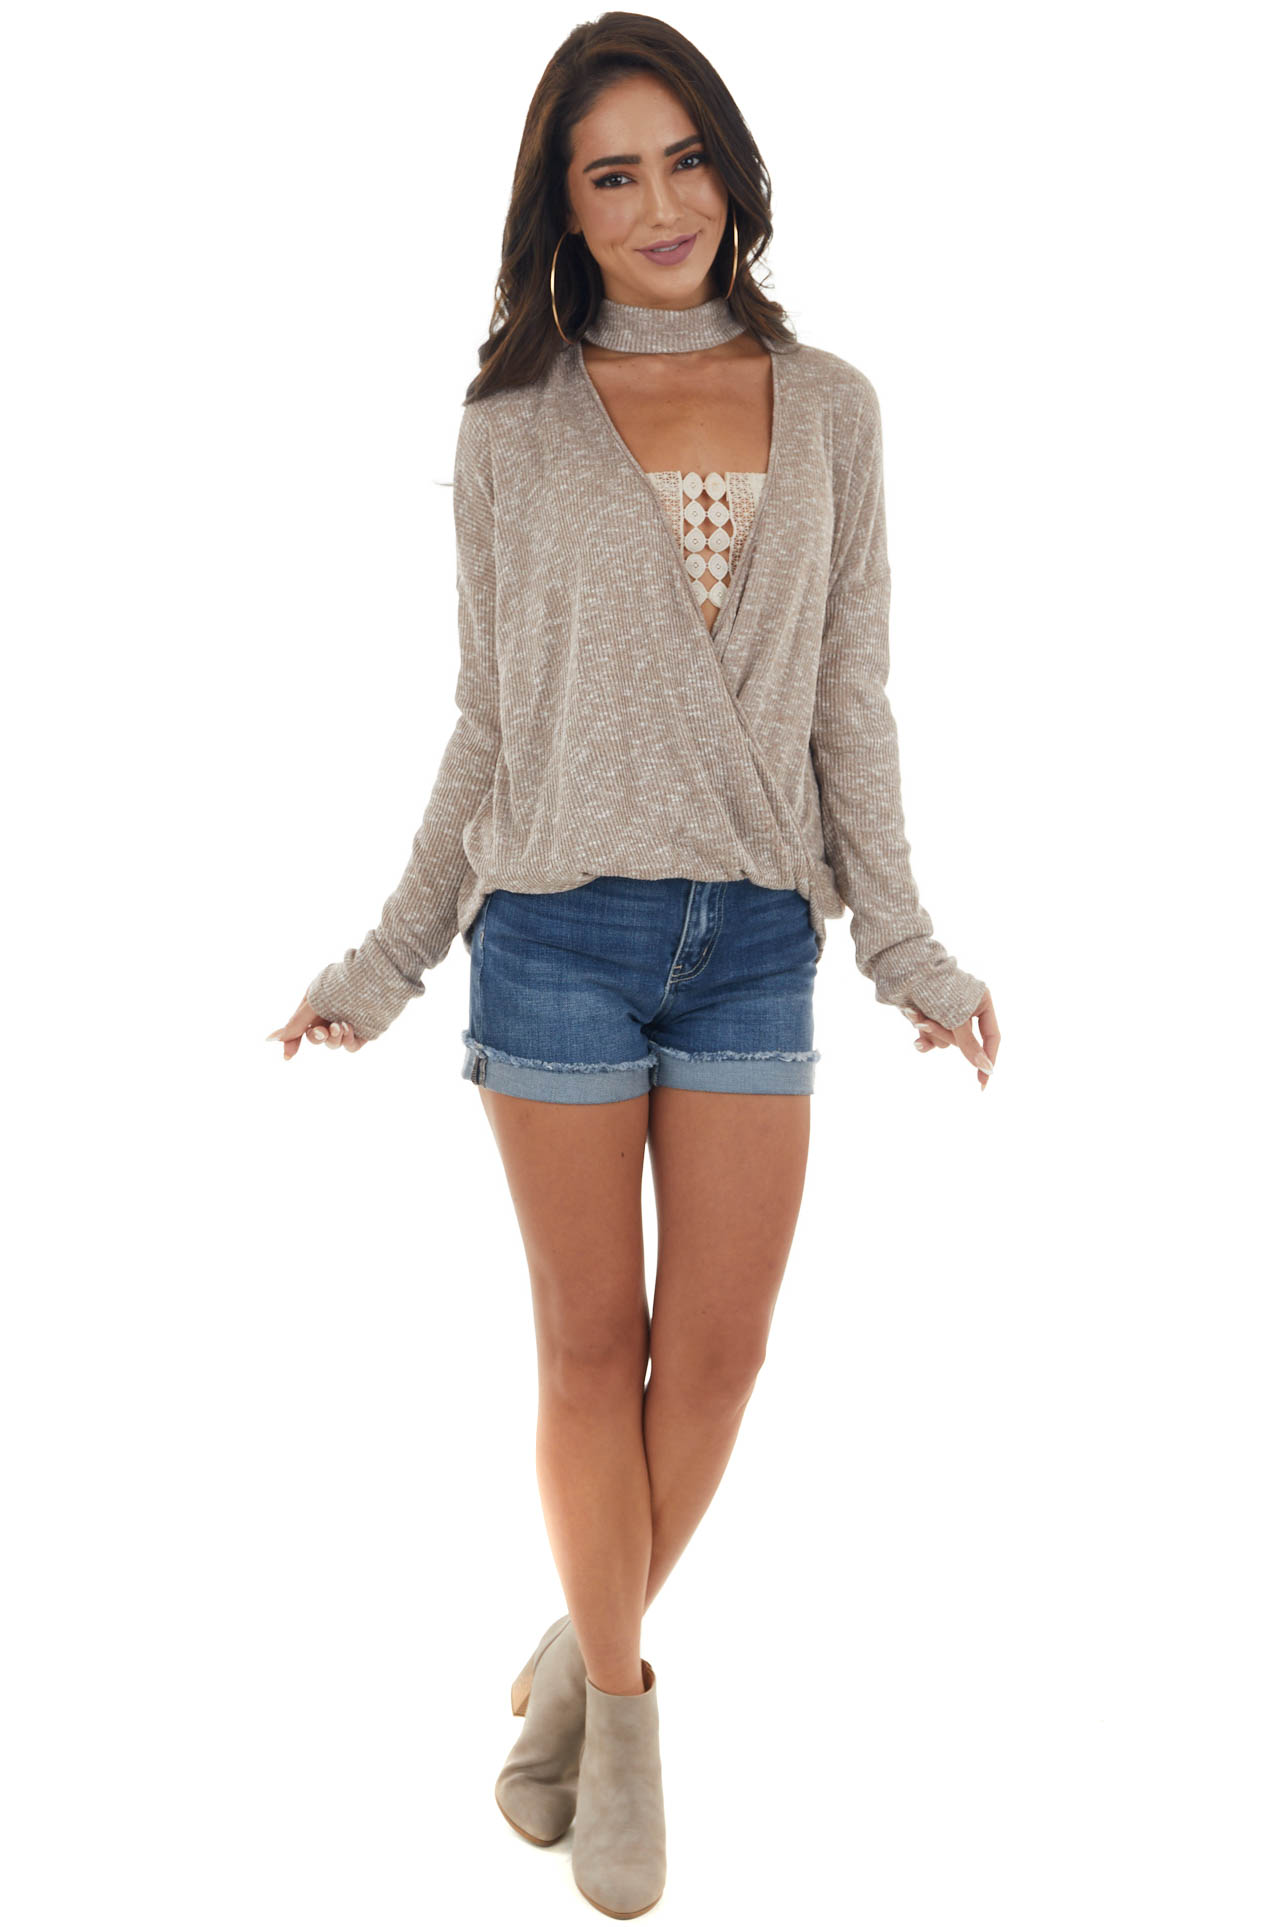 Latte and White Surplice Knit Top with Choker Neckline